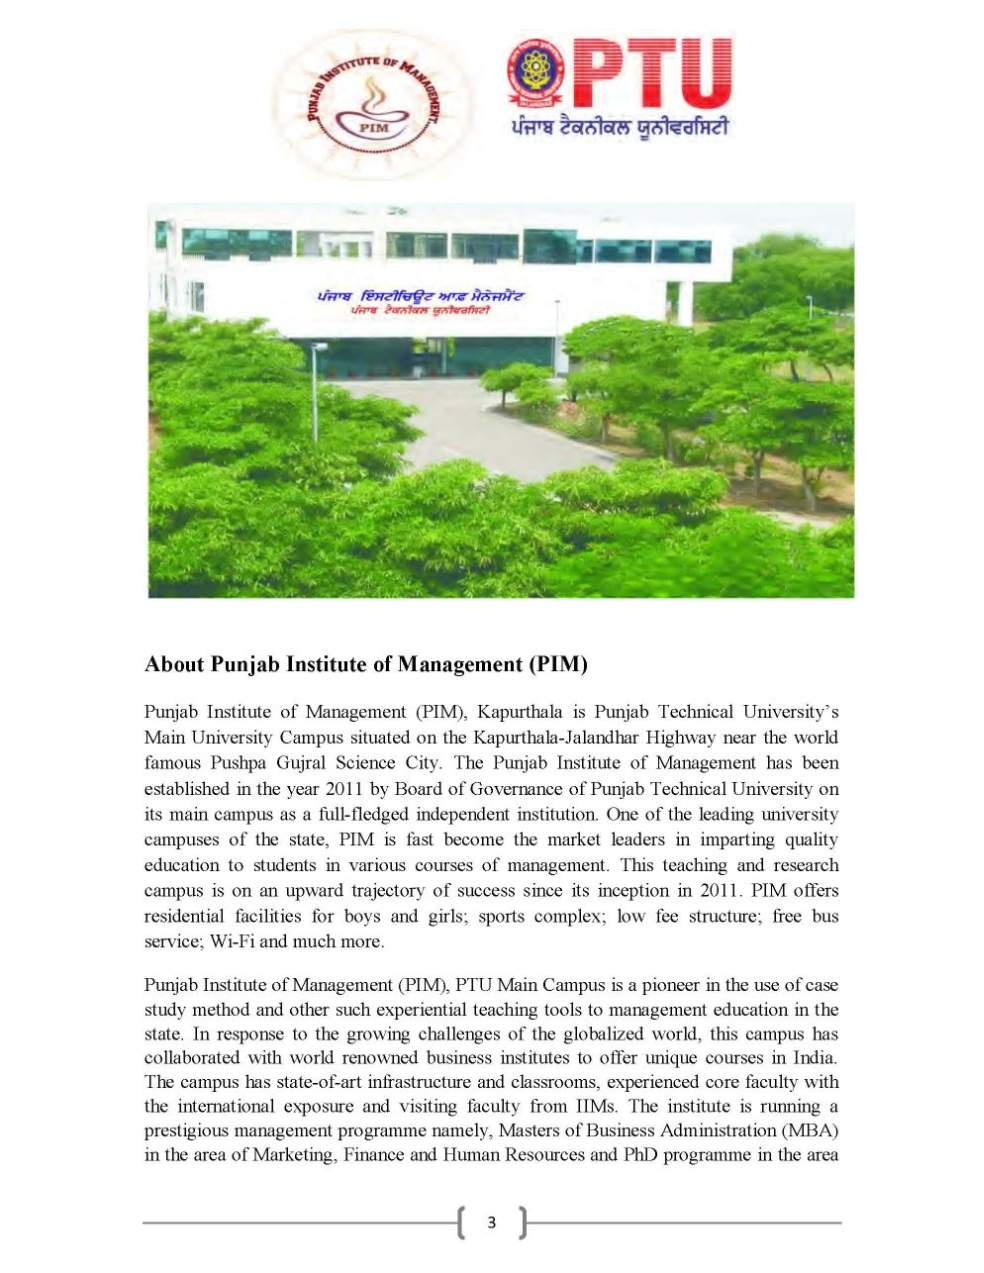 Mba organizational study report on commercial vegetable farming